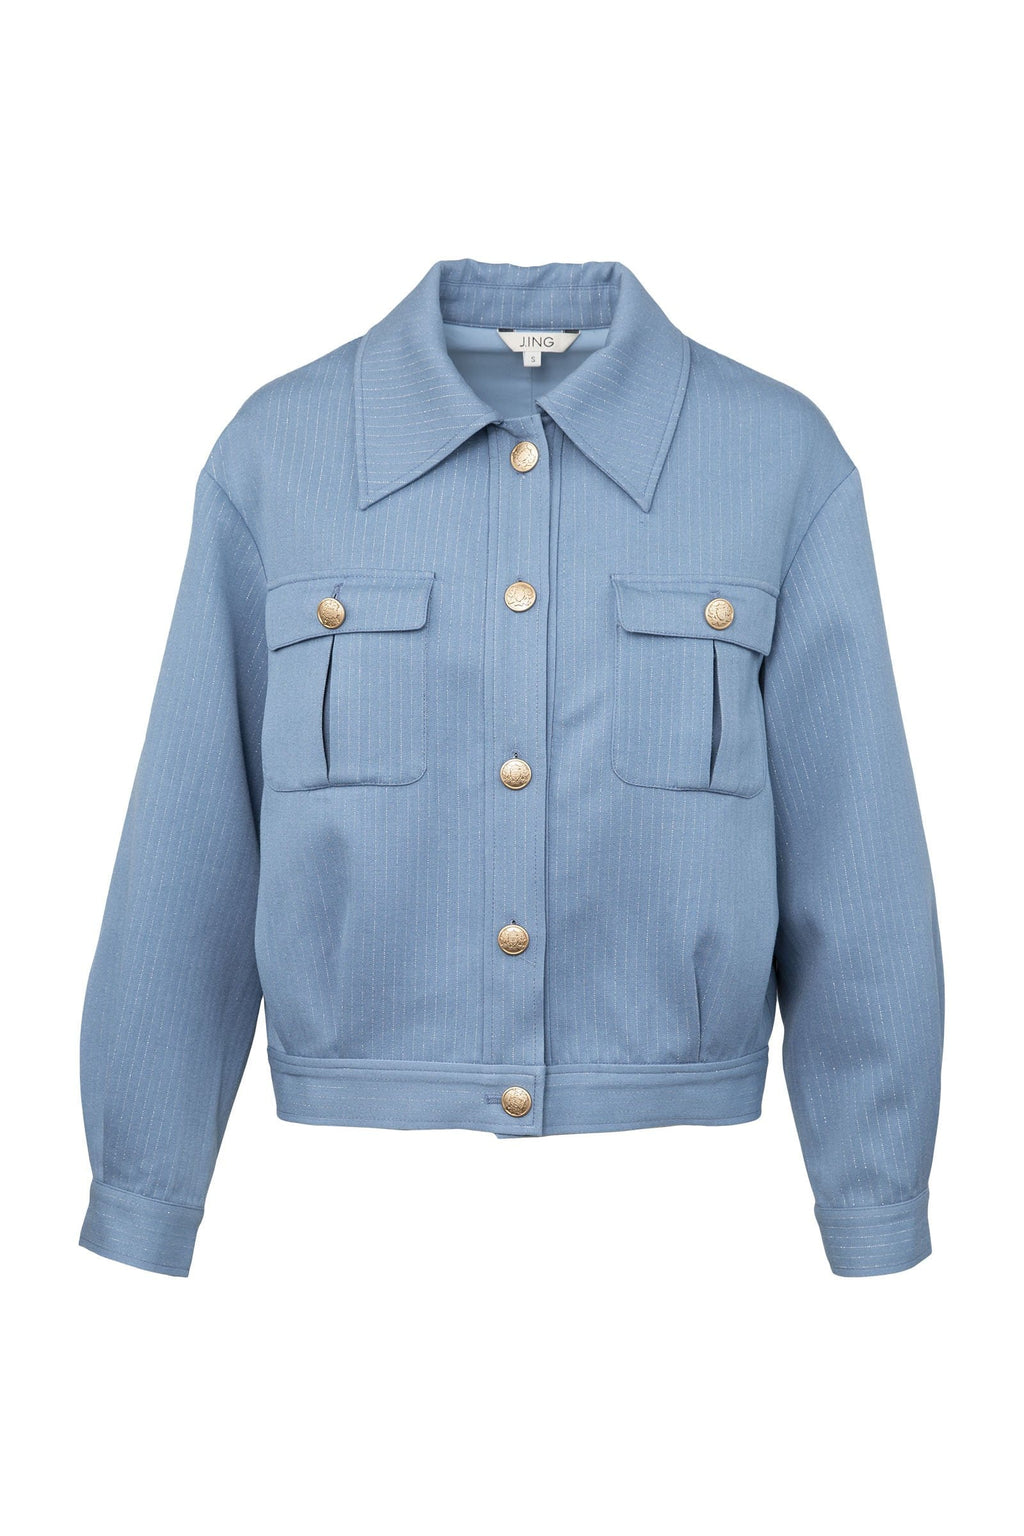 Indiana Blue Utility Jacket